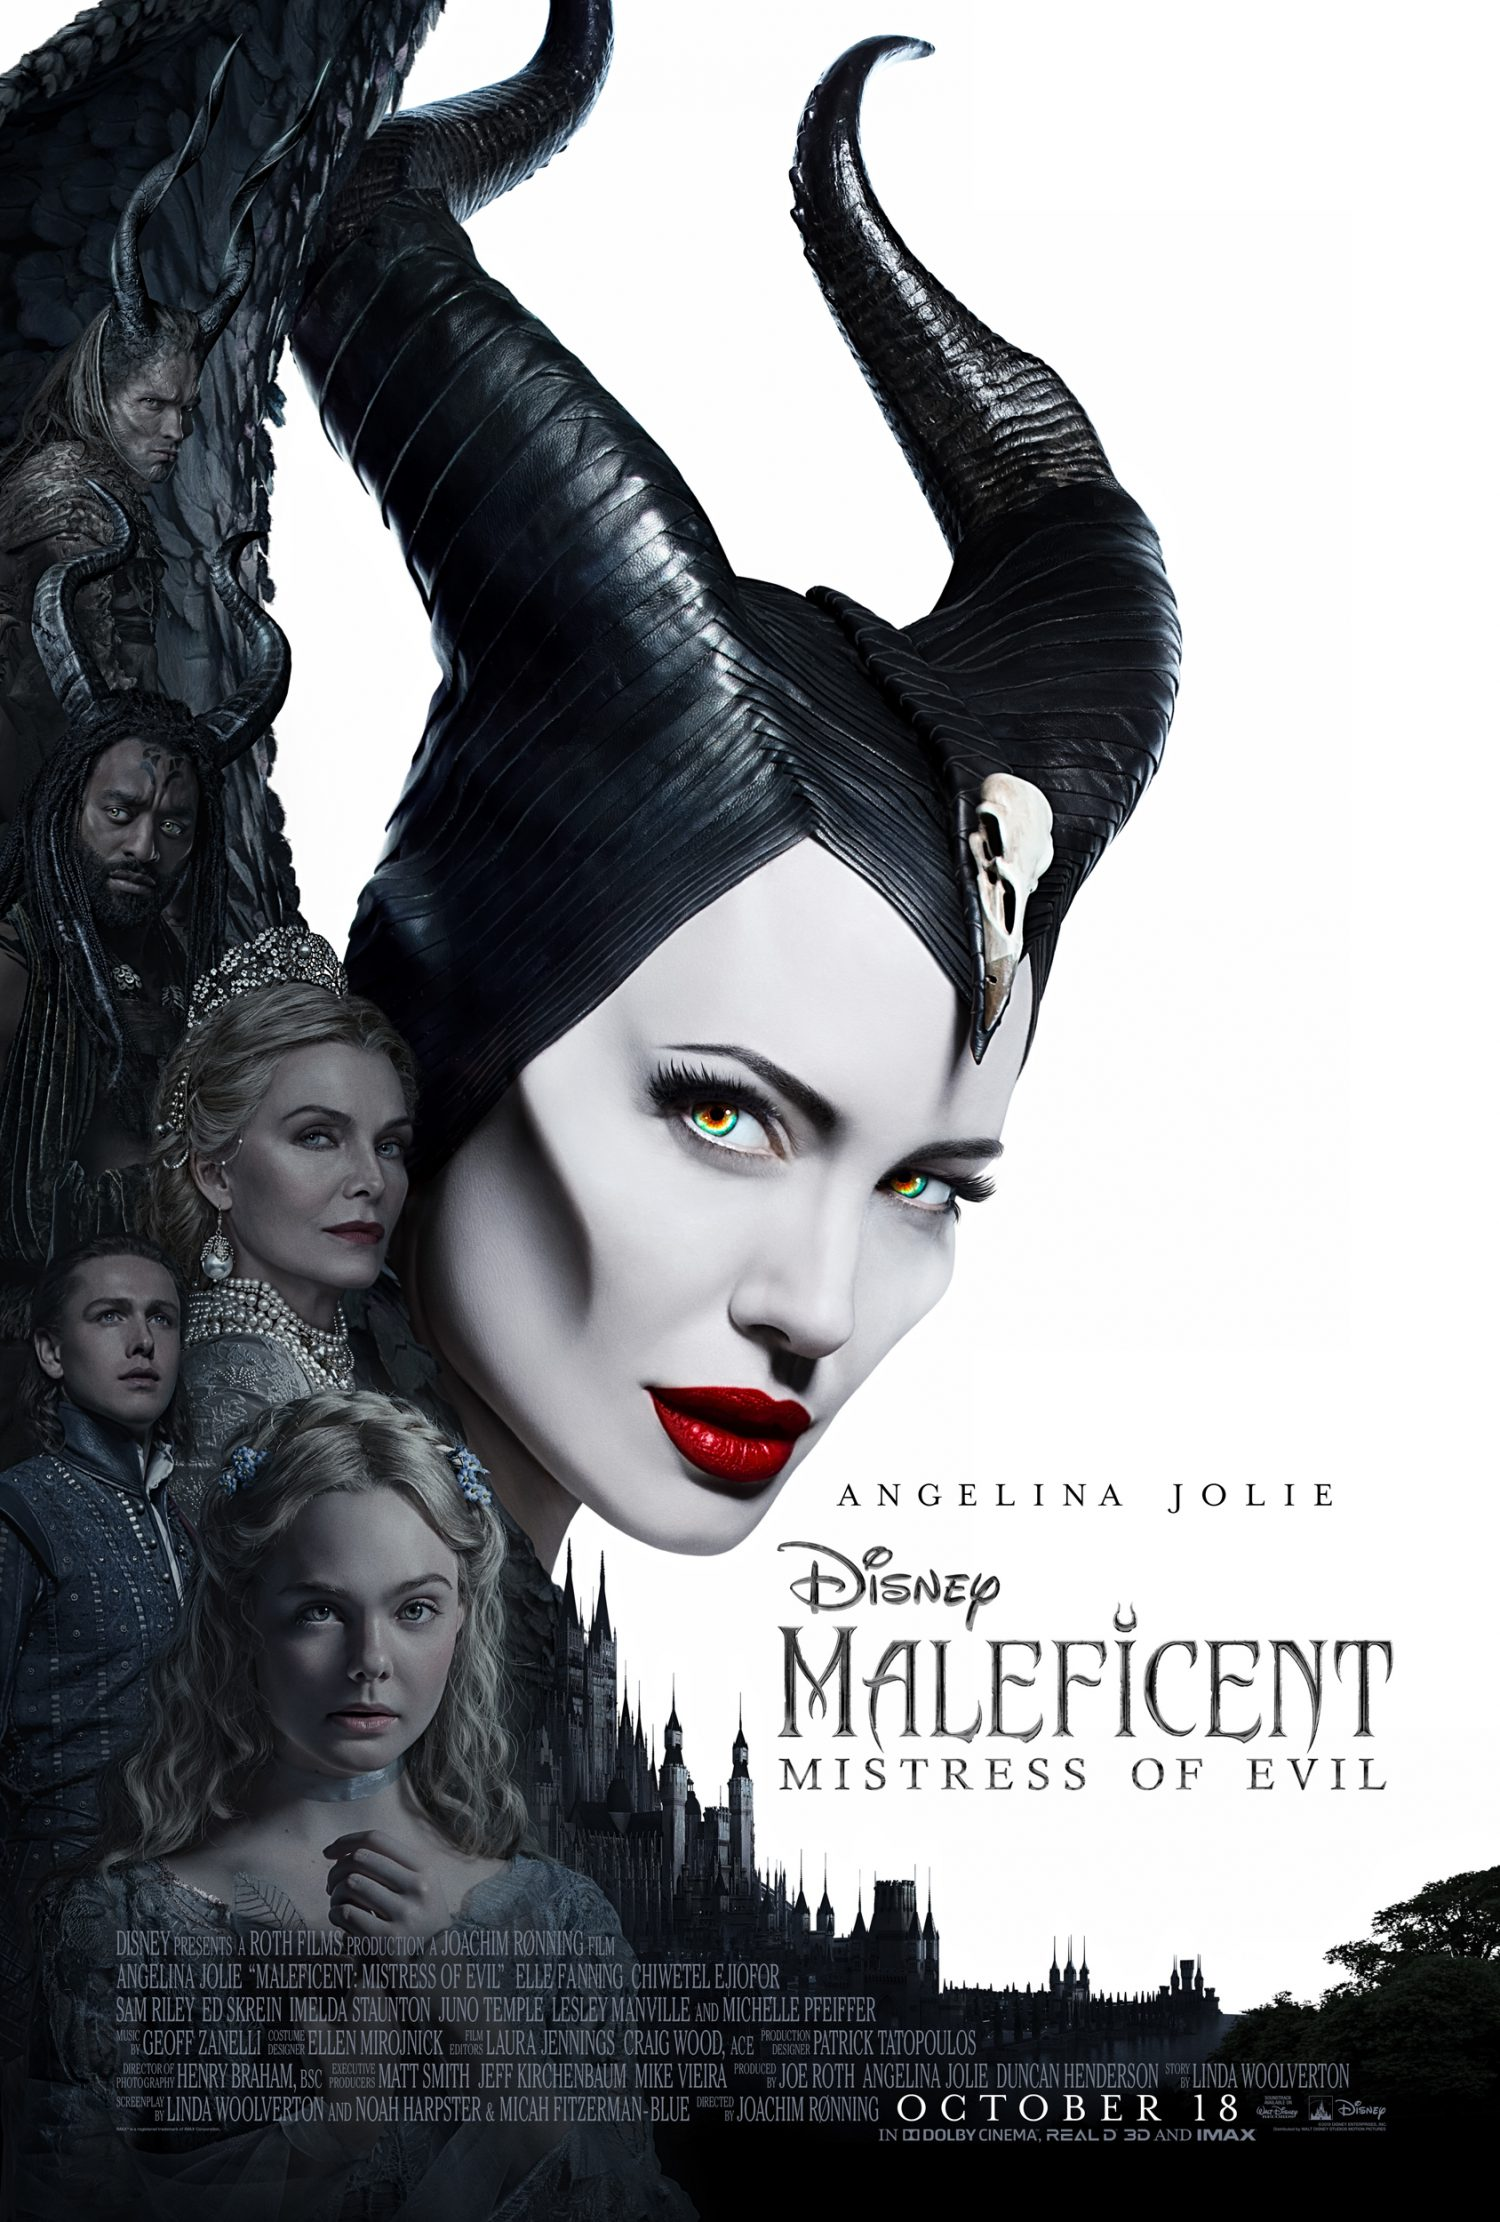 Take a look at the new Maleficent 2: Mistress of Evil movie poster.